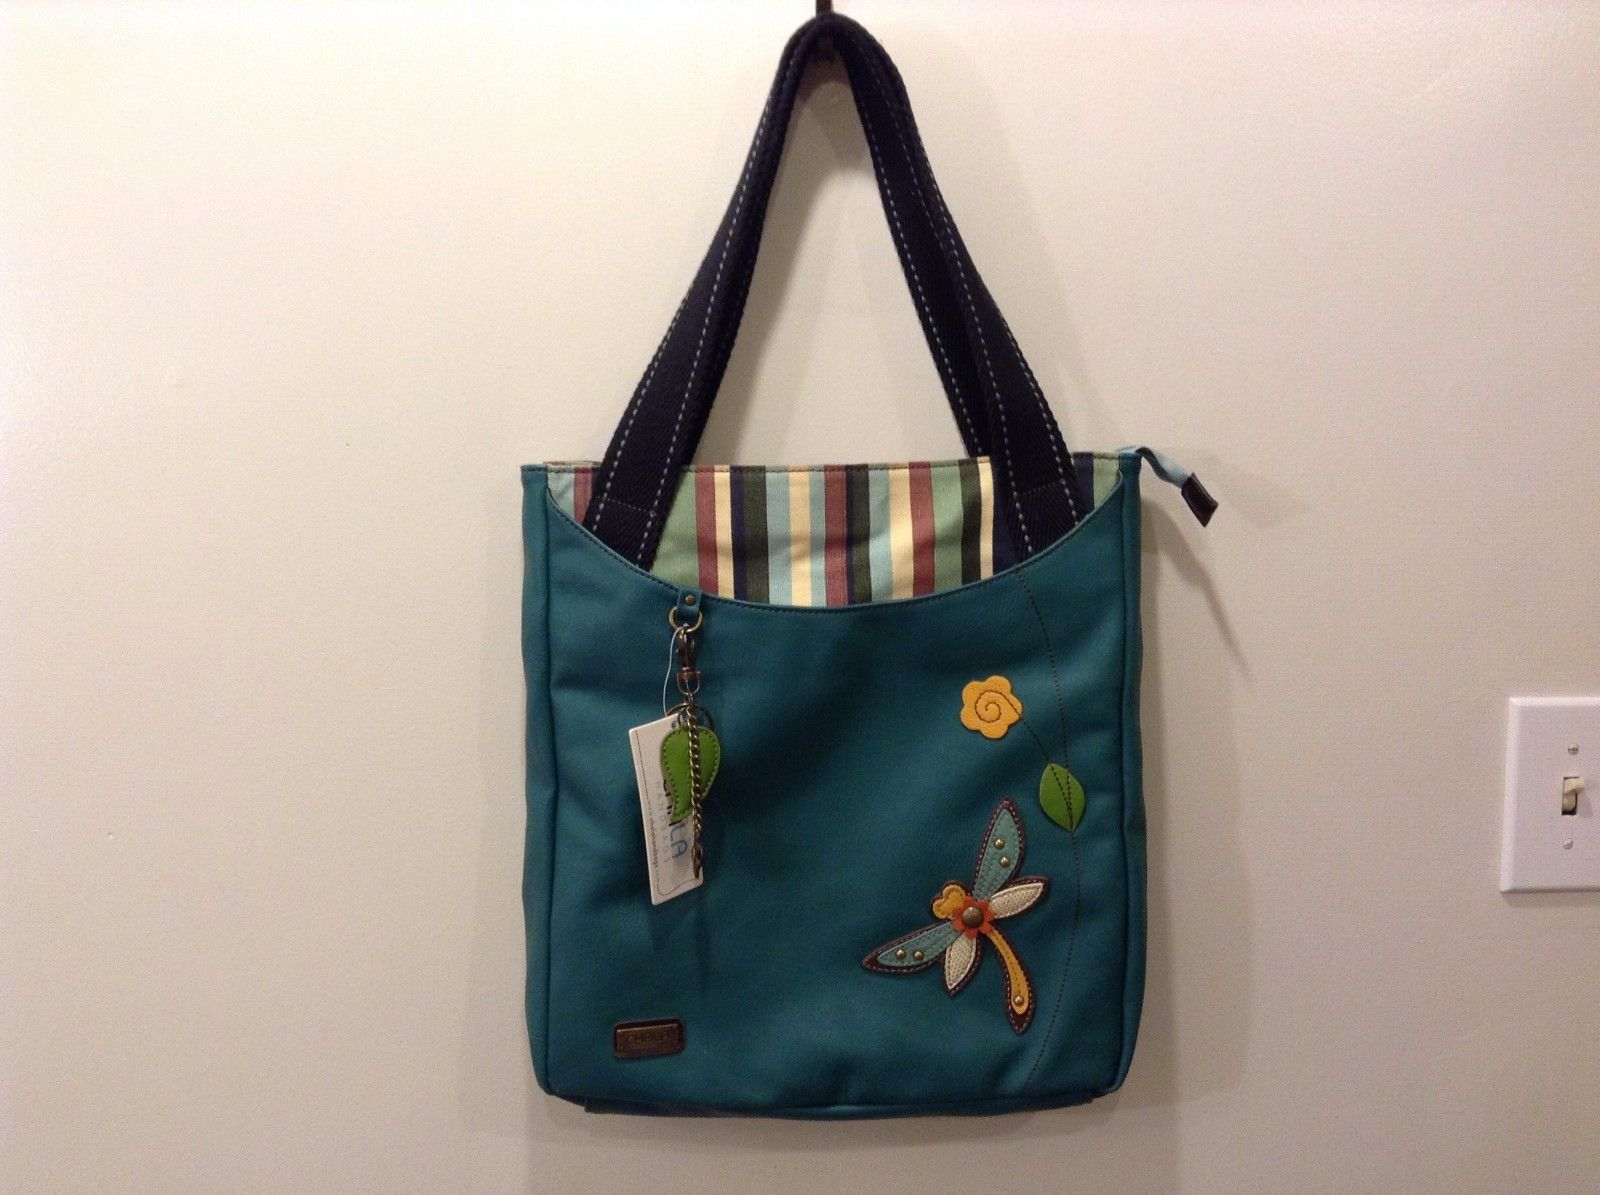 New Chala Handbags Teal Striped Canvas Faux Leather Zip Tote Purse Dragonfly